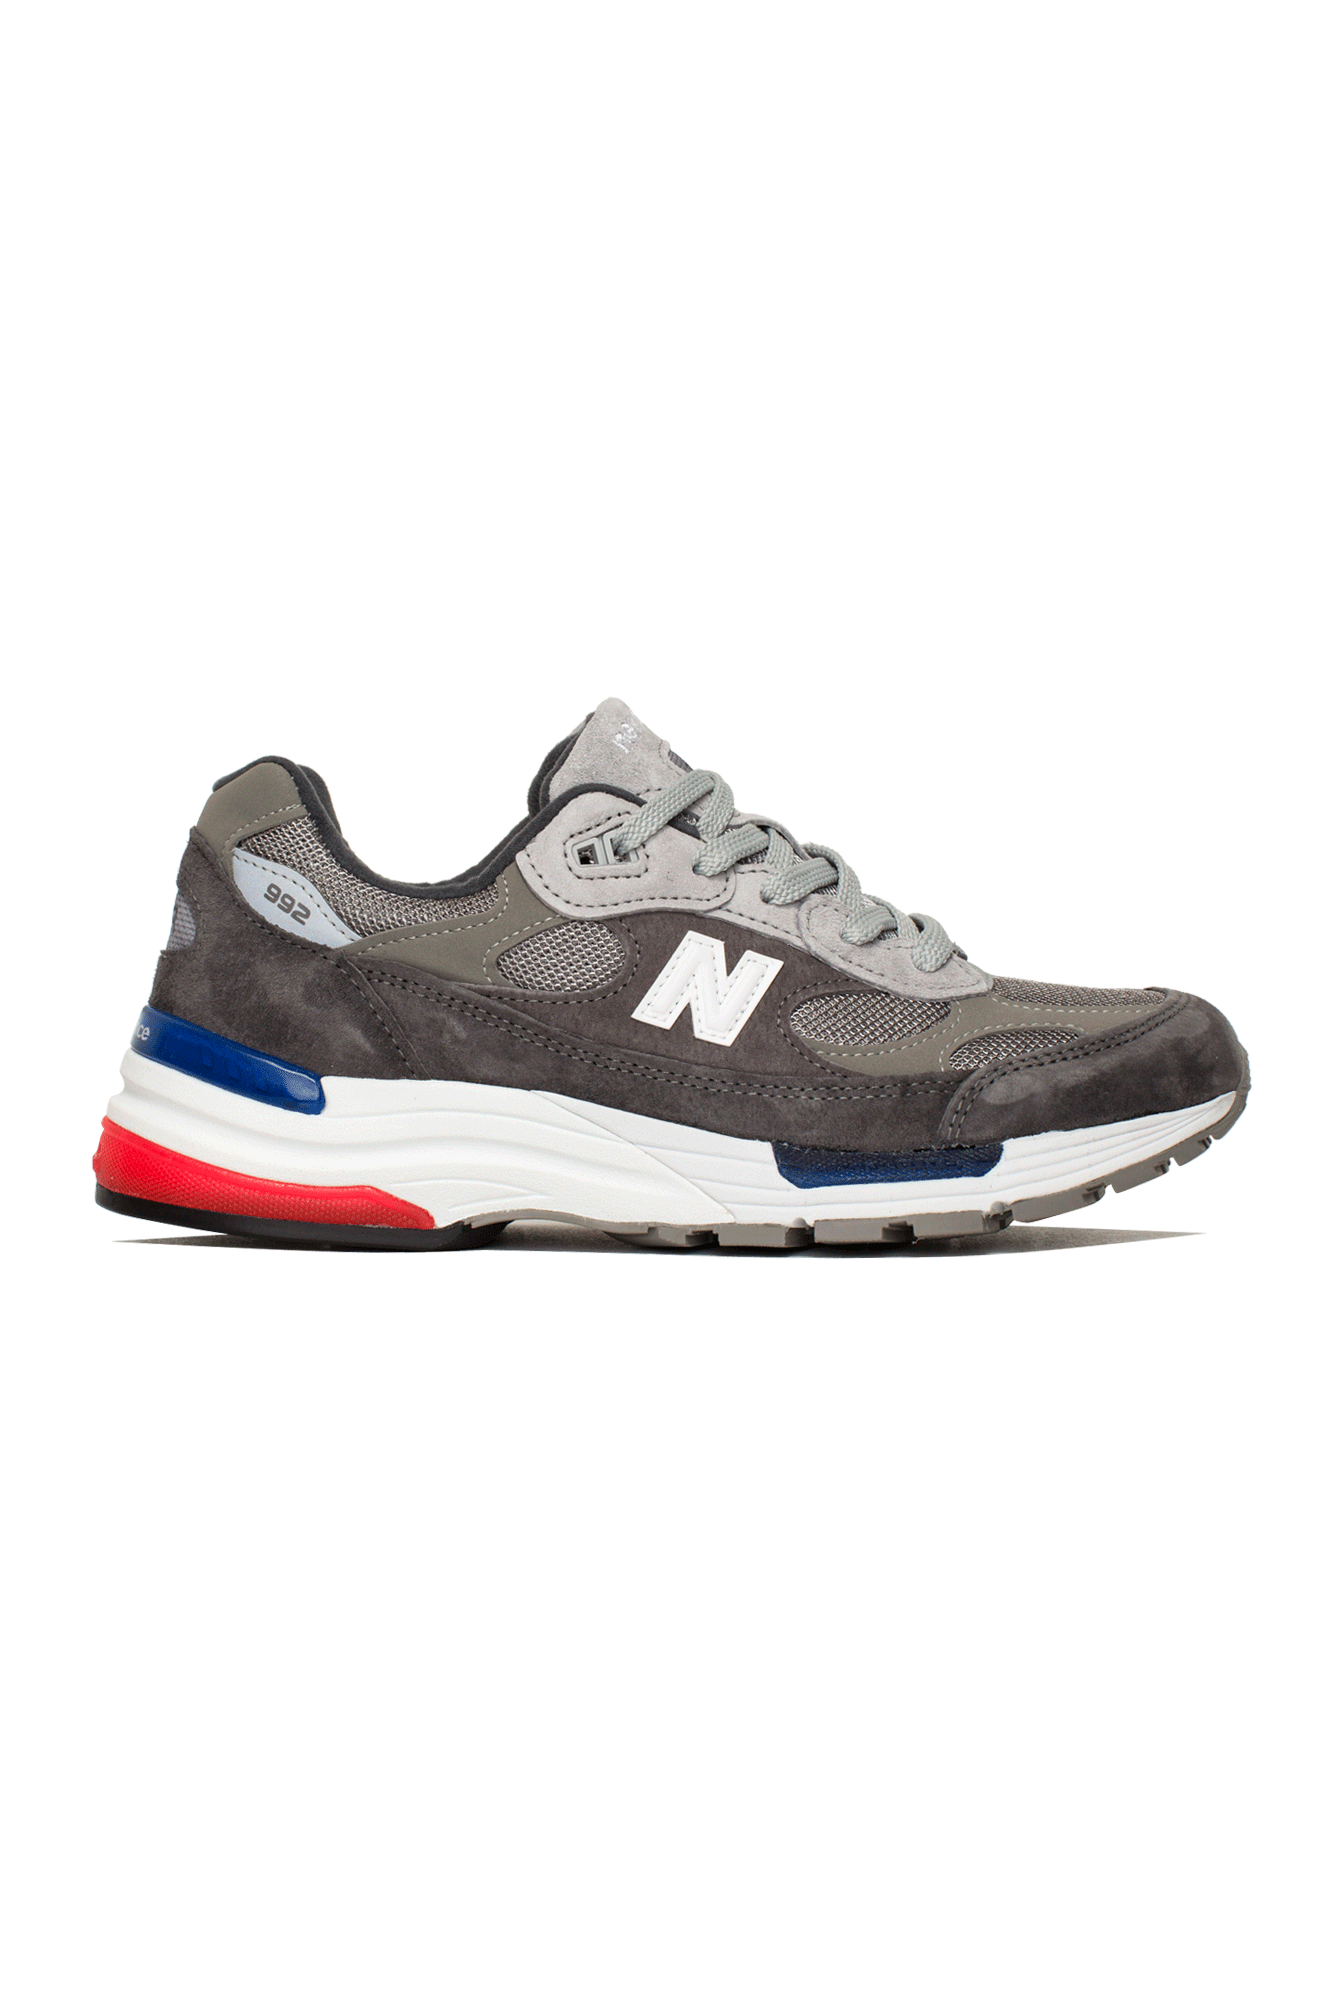 New Balance Sneakers 992 Grey M992#000#AG#8 - One Block Down